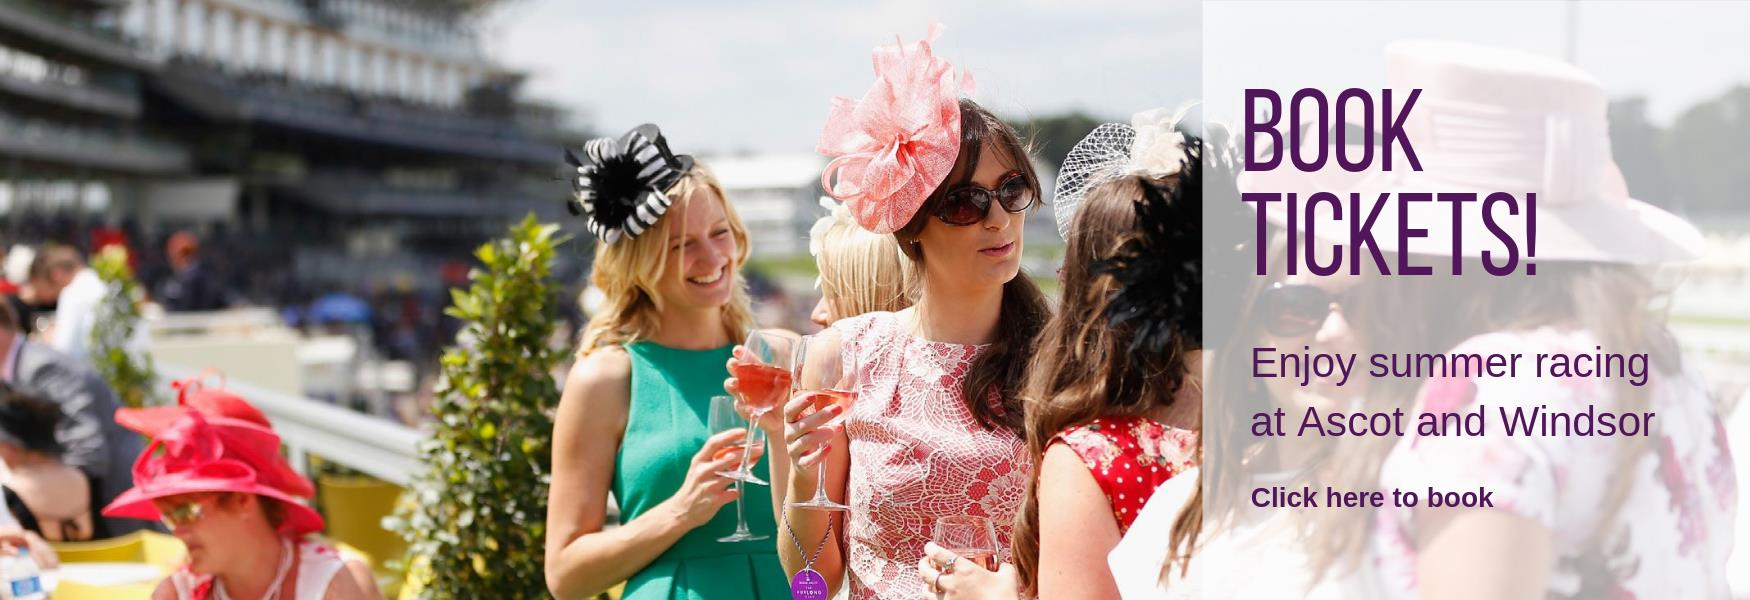 Book for summertime racing at Ascot and Windsor